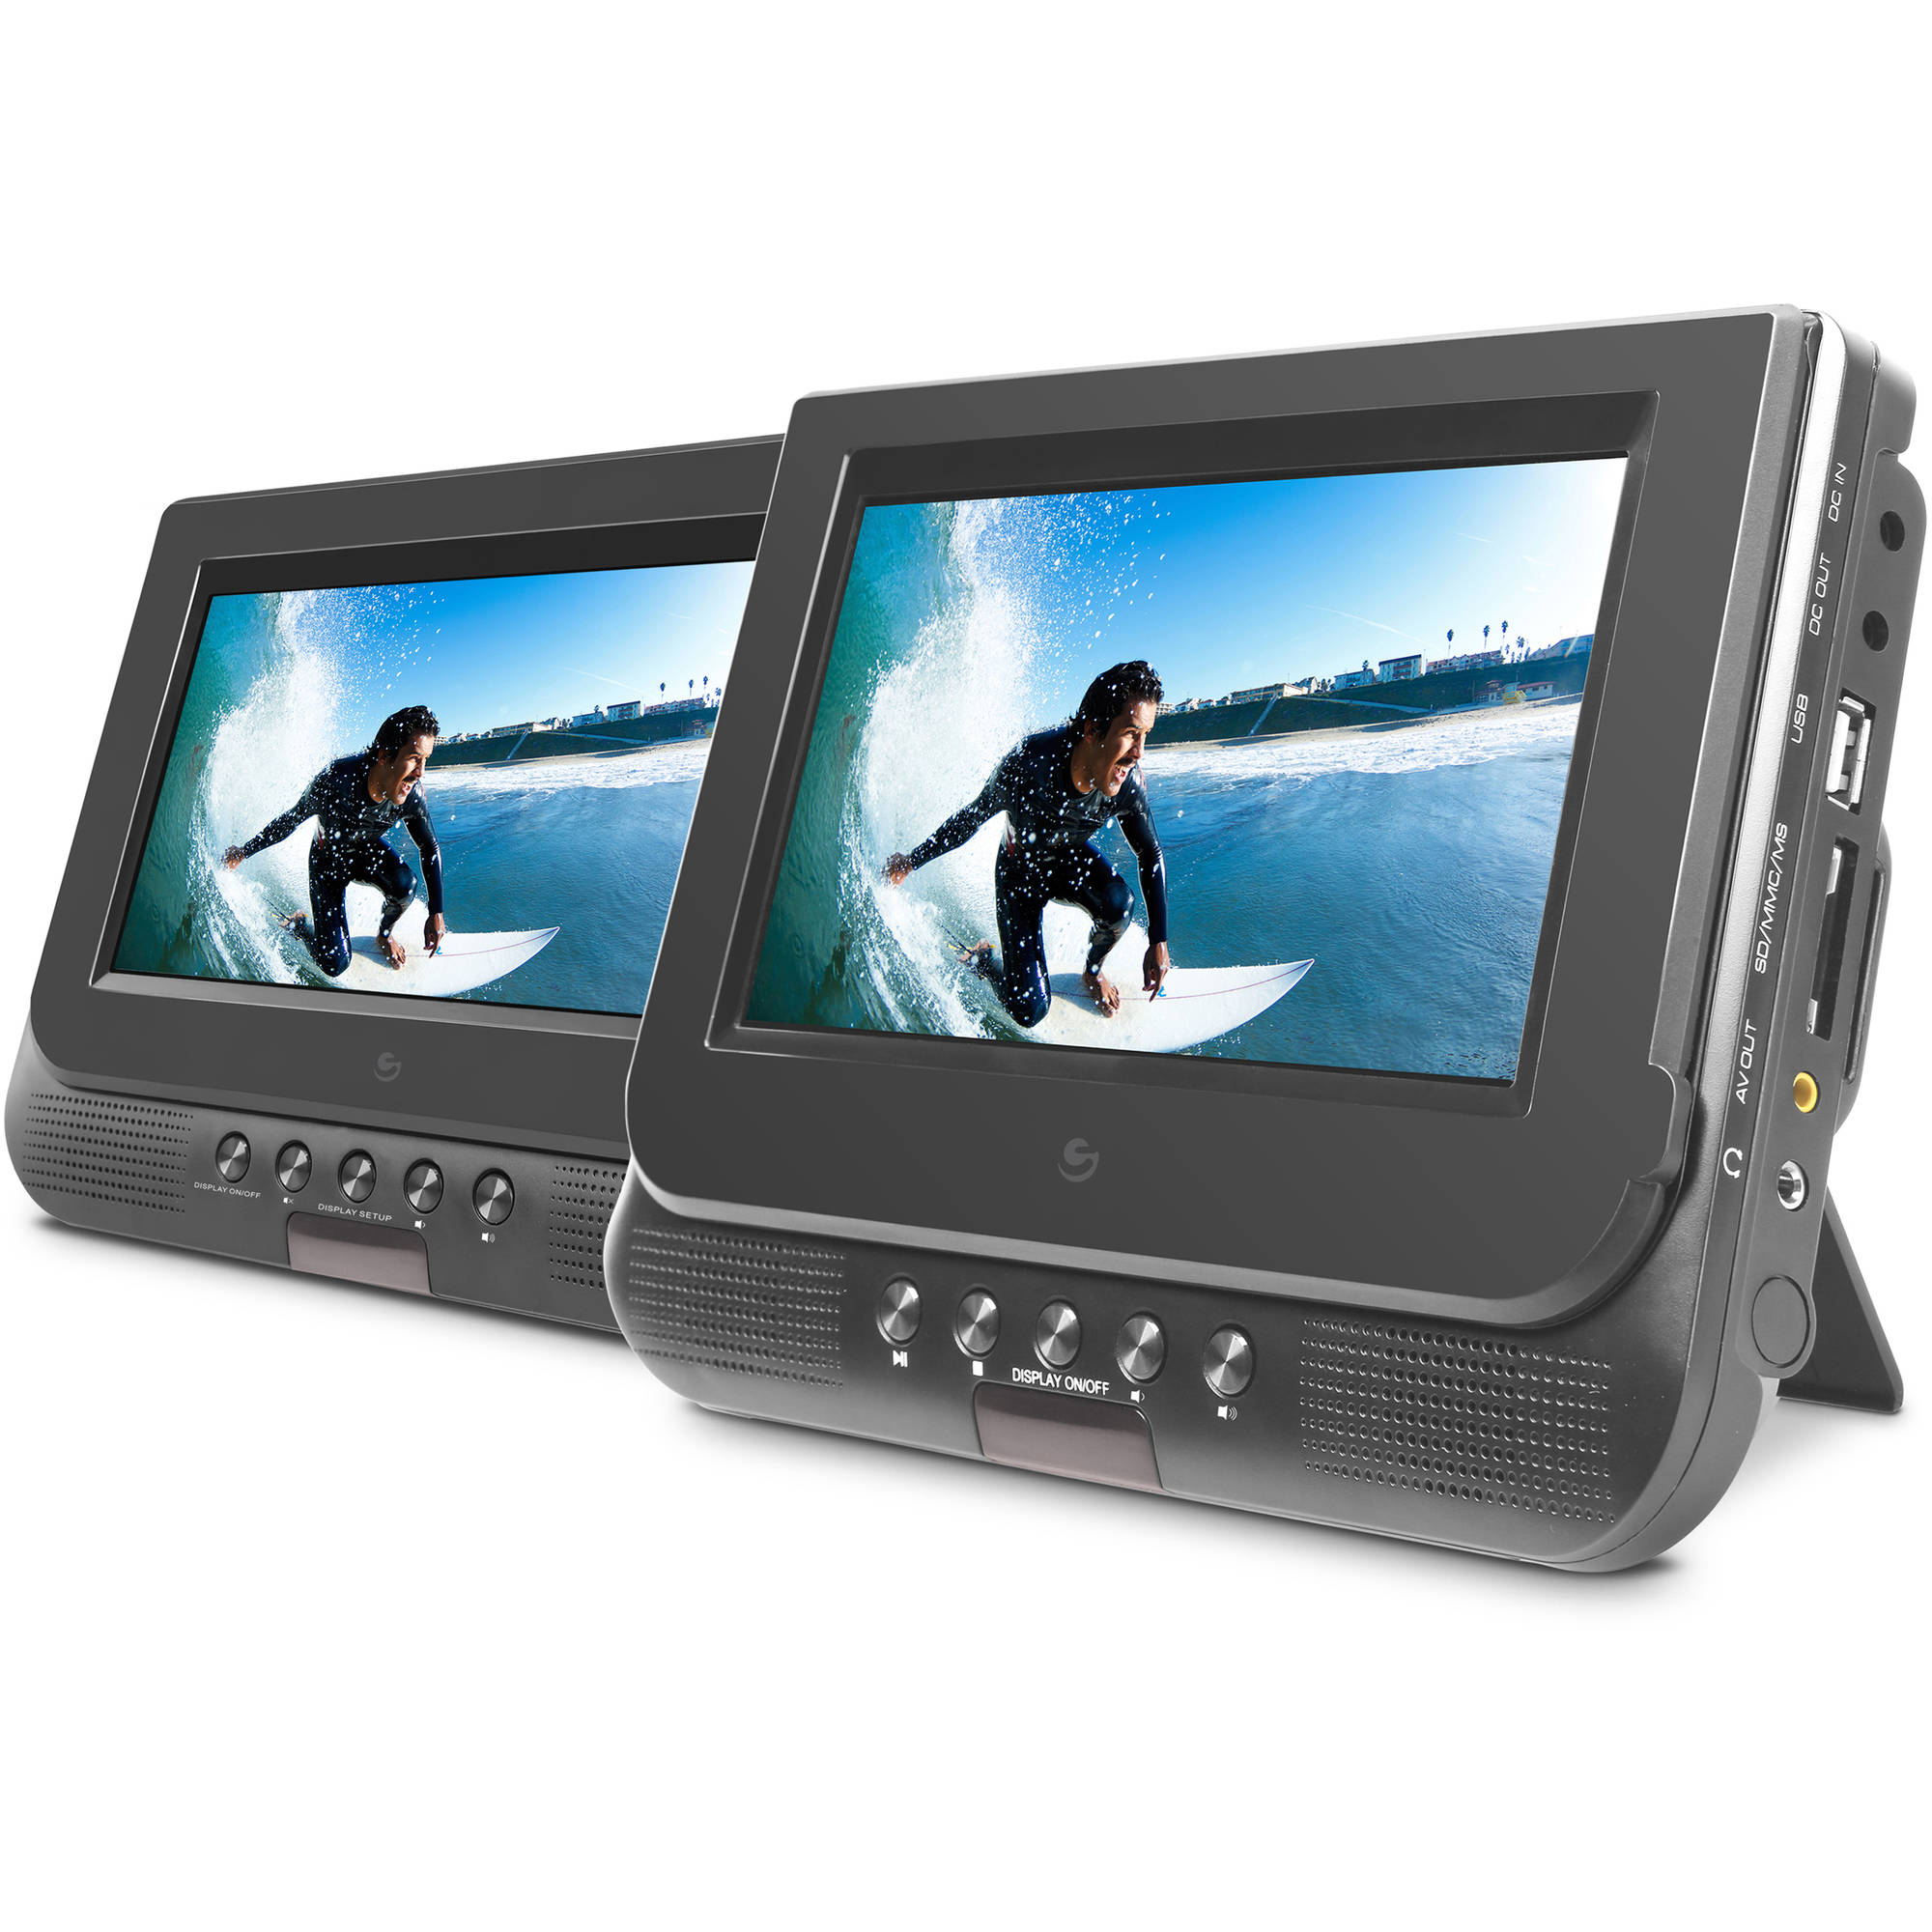 Ematic 7 Dual Screen Portable DVD Player by Ematic